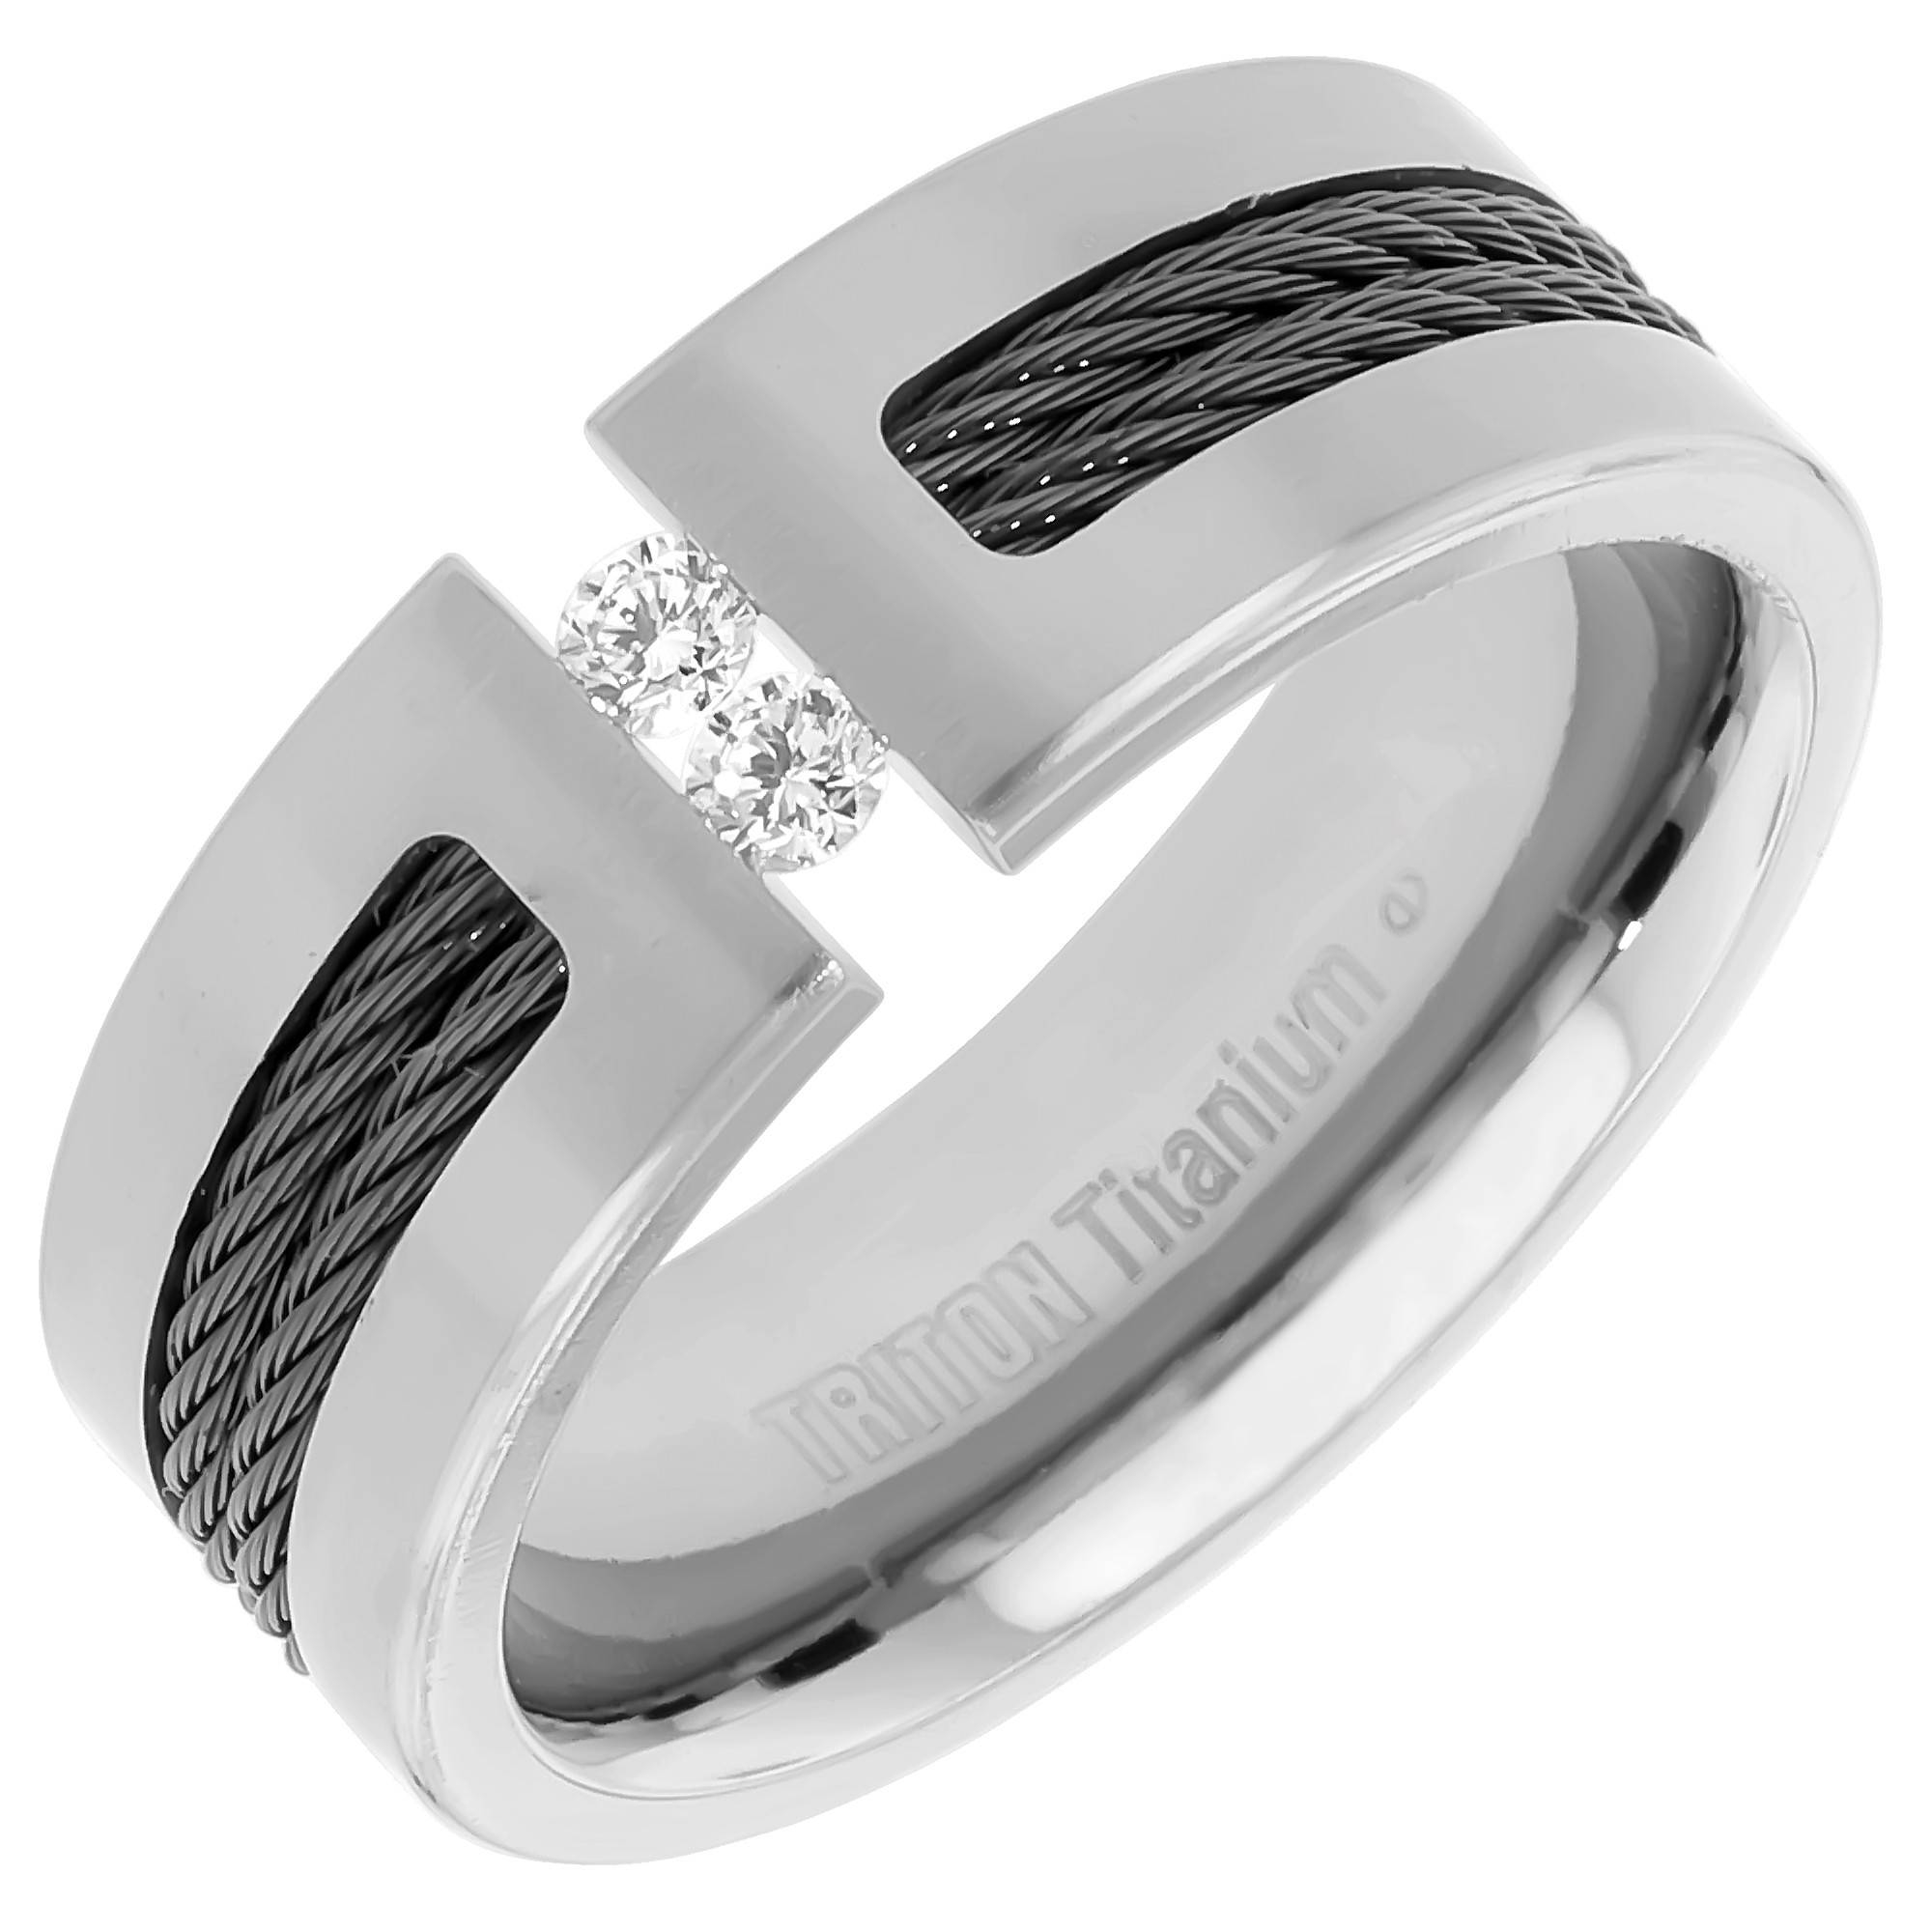 Mens Diamond Wedding Band In Titanium (8Mm) With Regard To Male Wedding Bands With Diamonds (View 11 of 15)